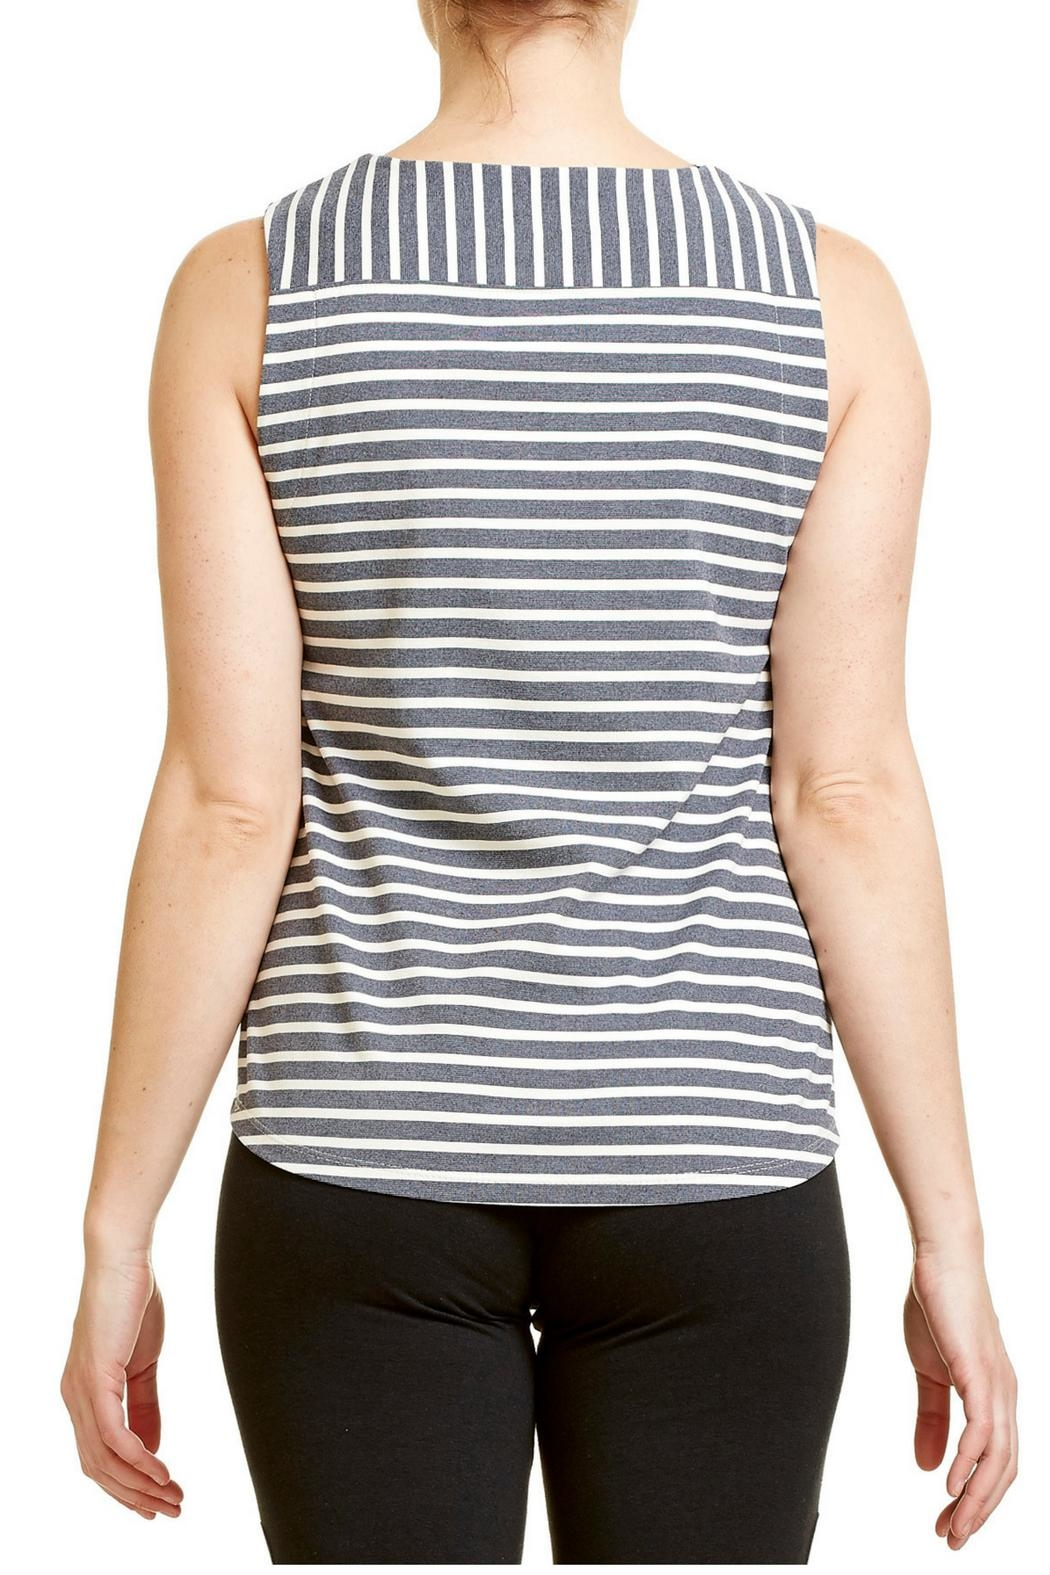 FIG Clothing Jax Top - Front Full Image